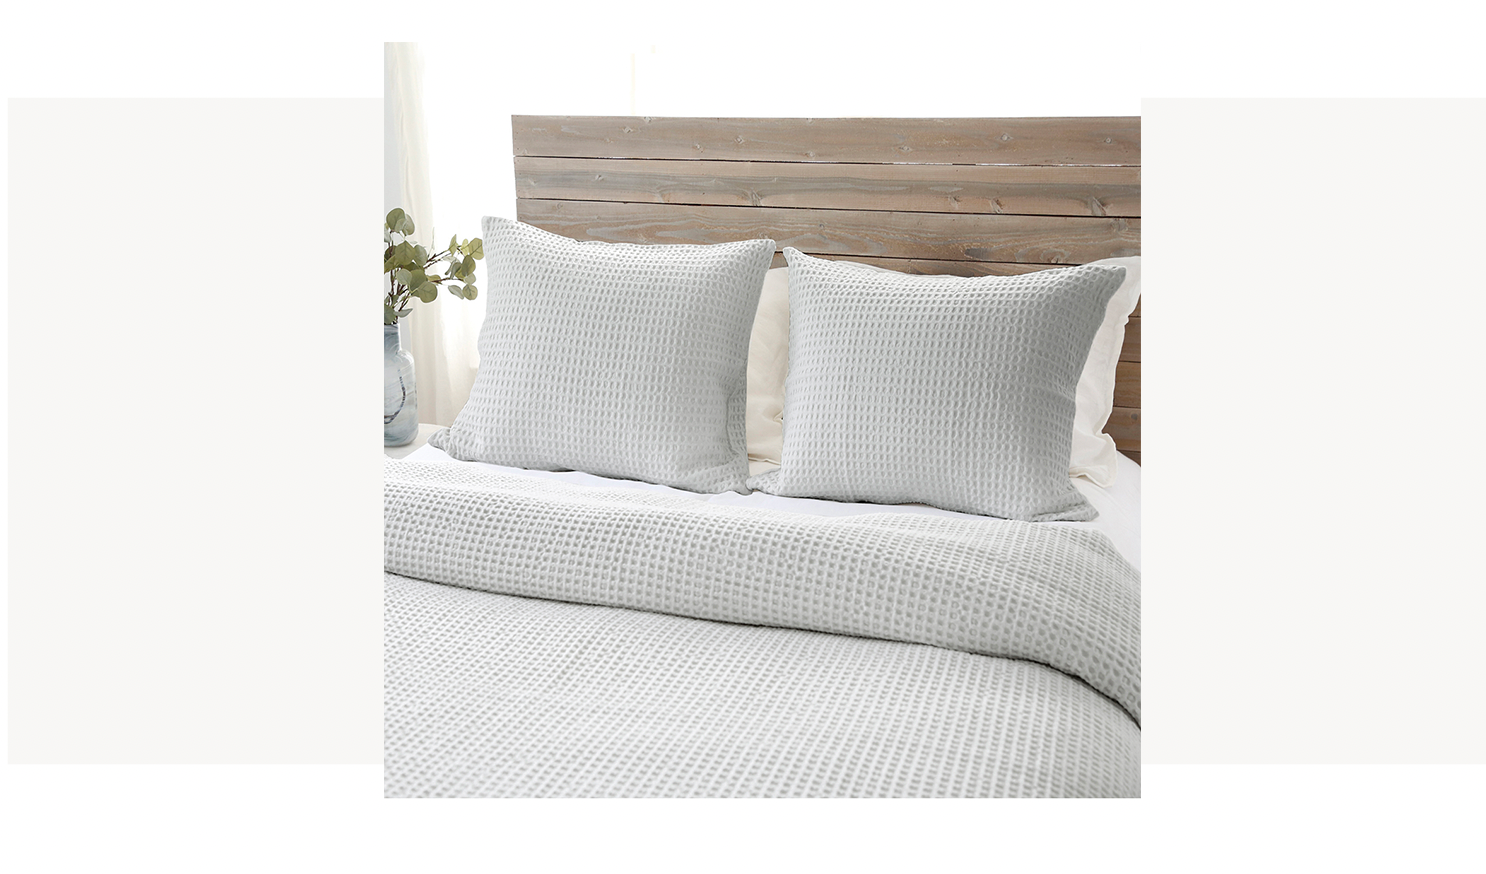 waffle weave bedding in a soft green blue color